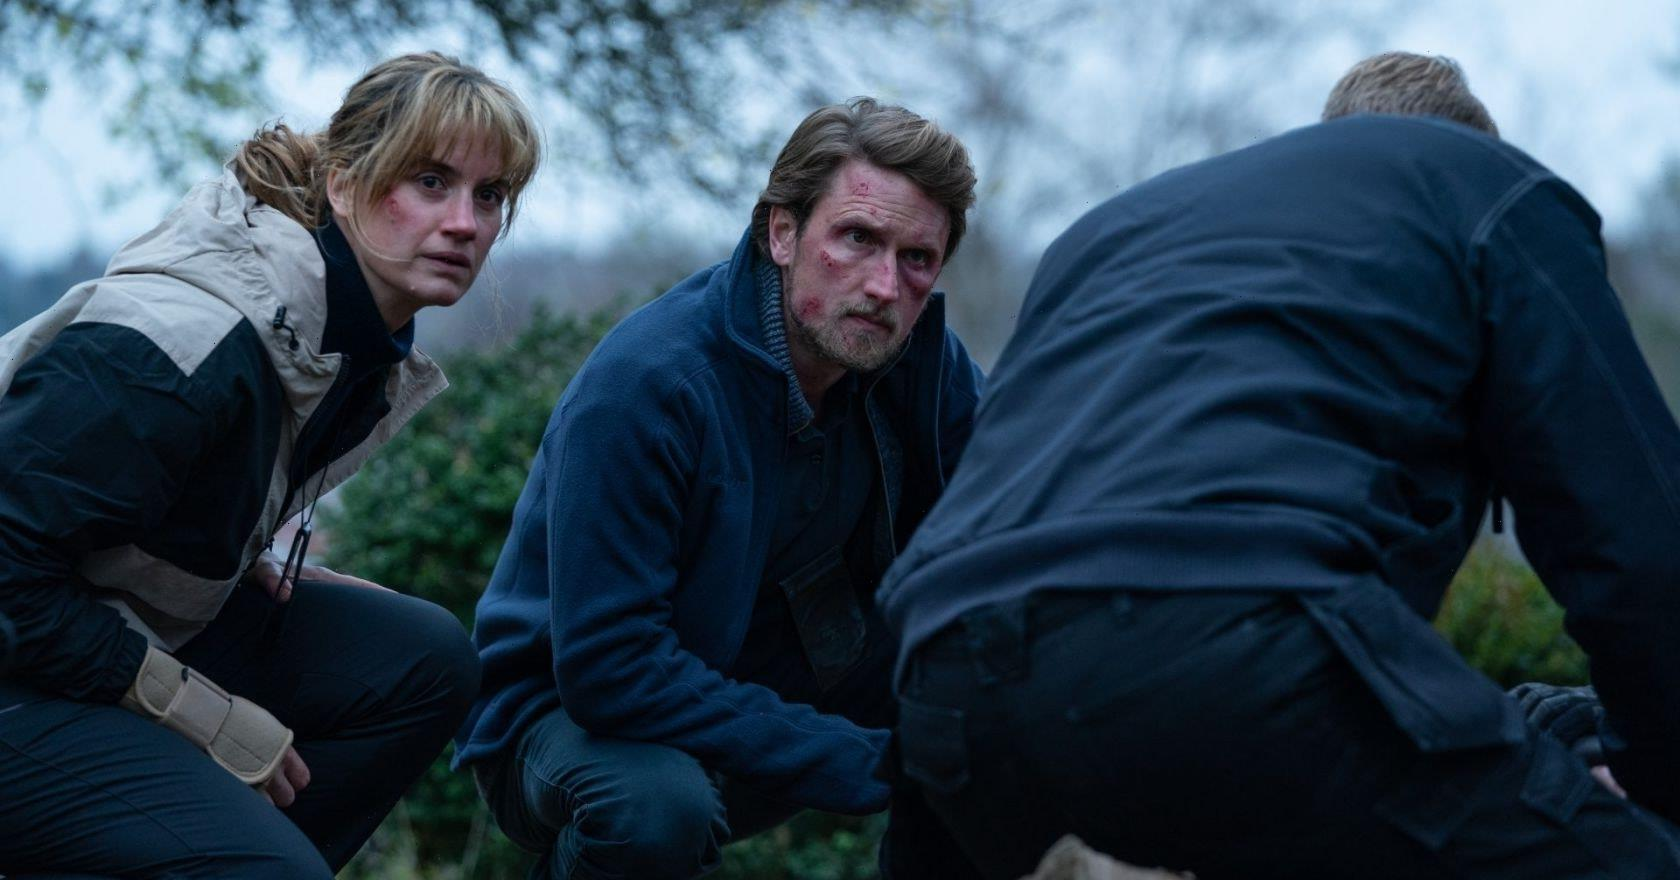 We're already obsessed with Netflix's new Nordic noir series